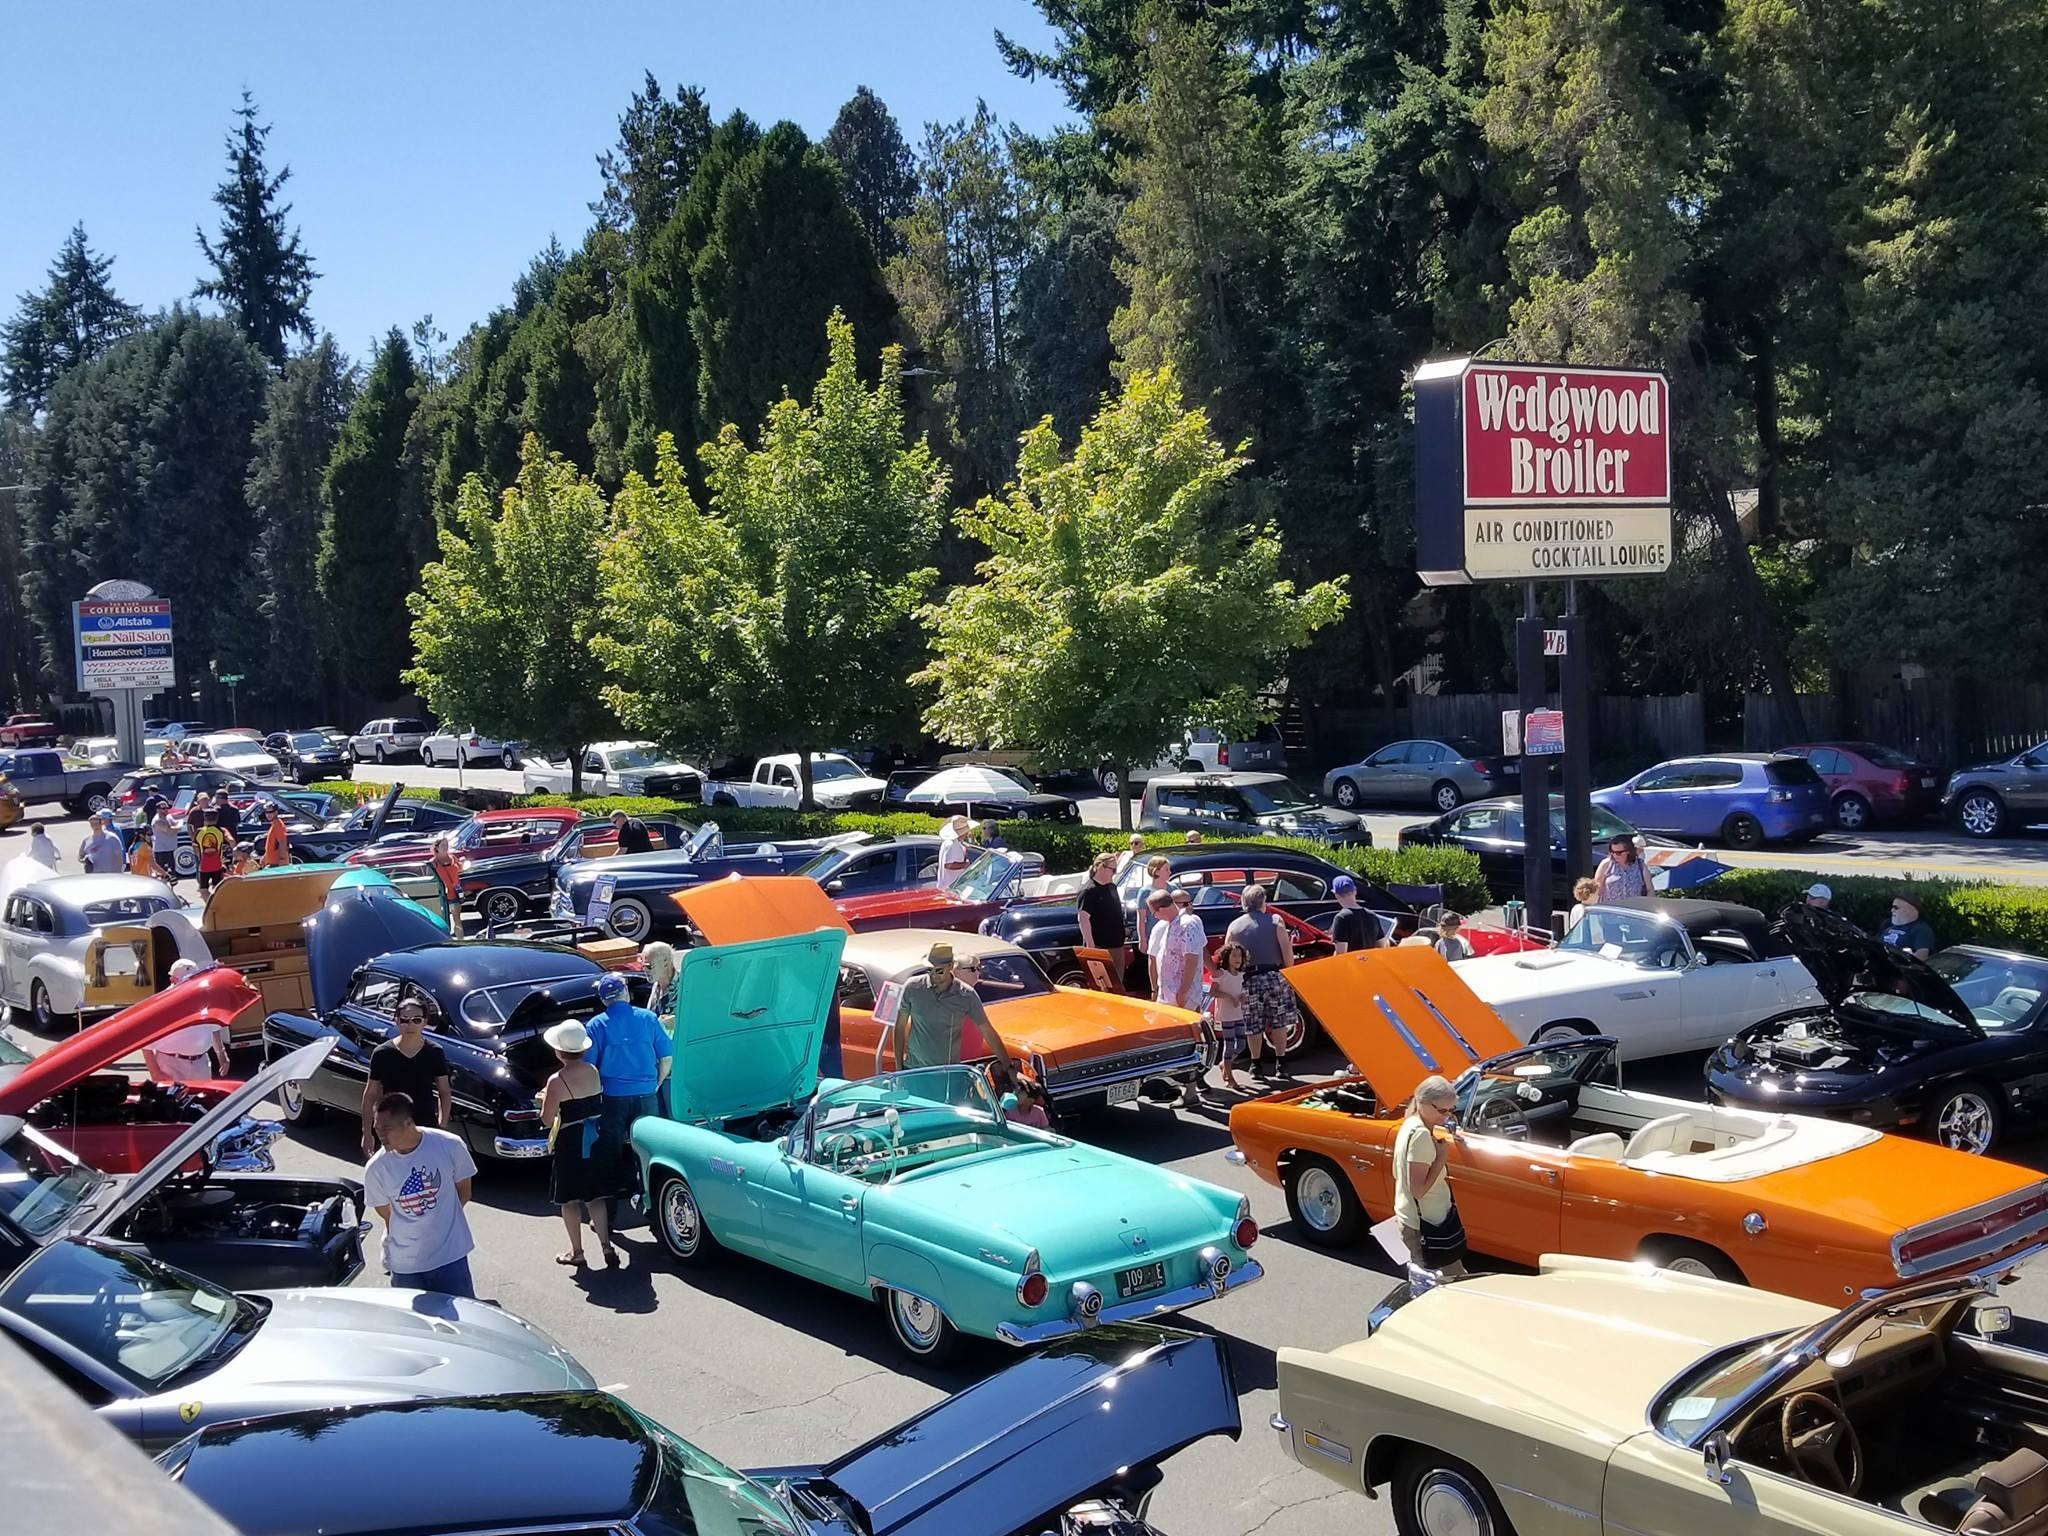 Car Show And Cancer Fundraiser At The Wedgwood Broiler